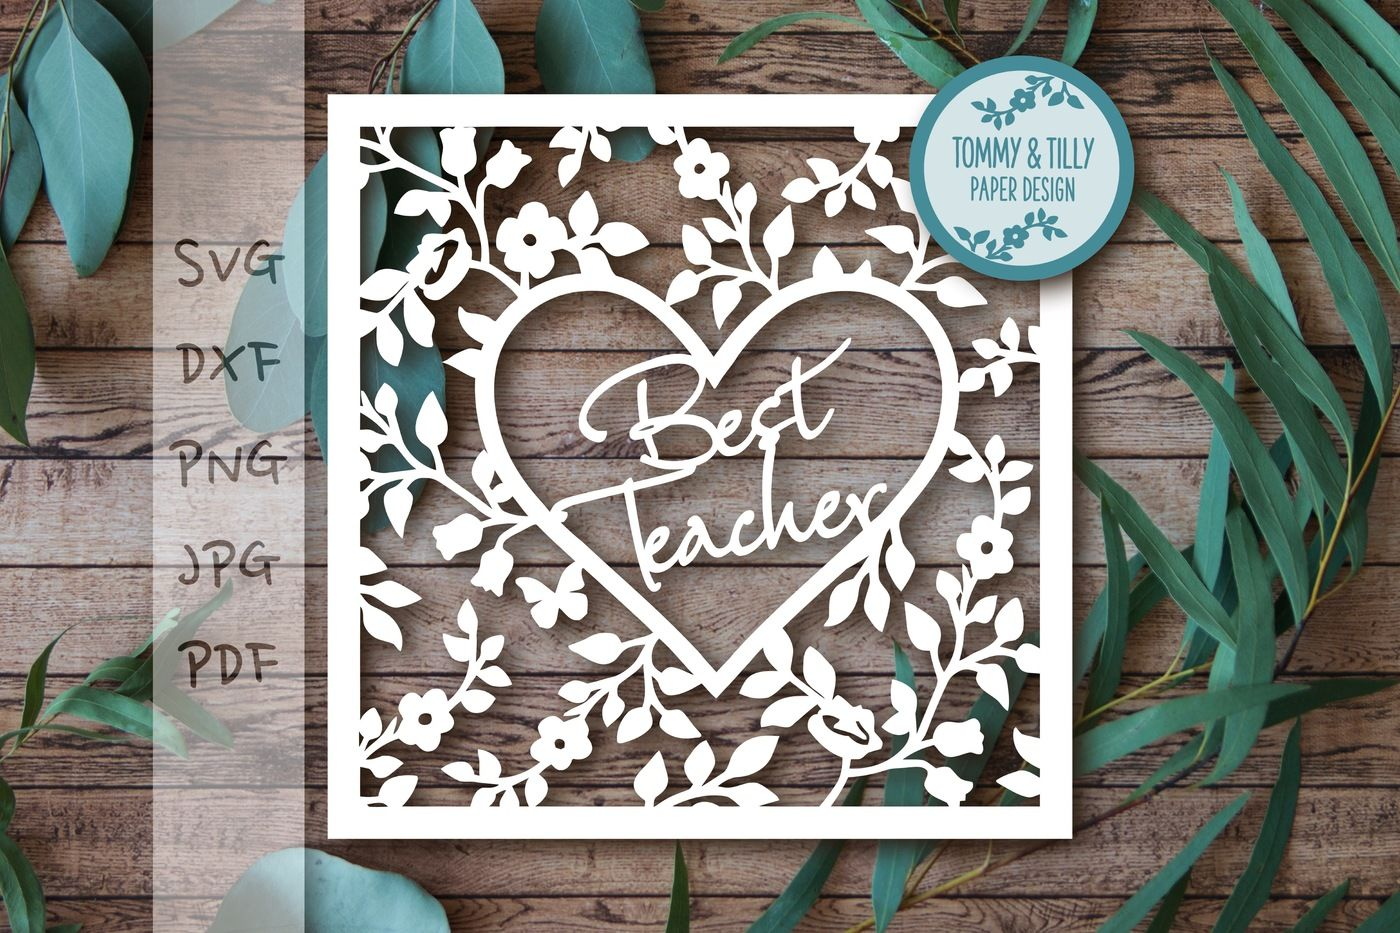 Best Teacher Heart Frame Svg Dxf Png Pdf Jpg By Tommy And Tilly